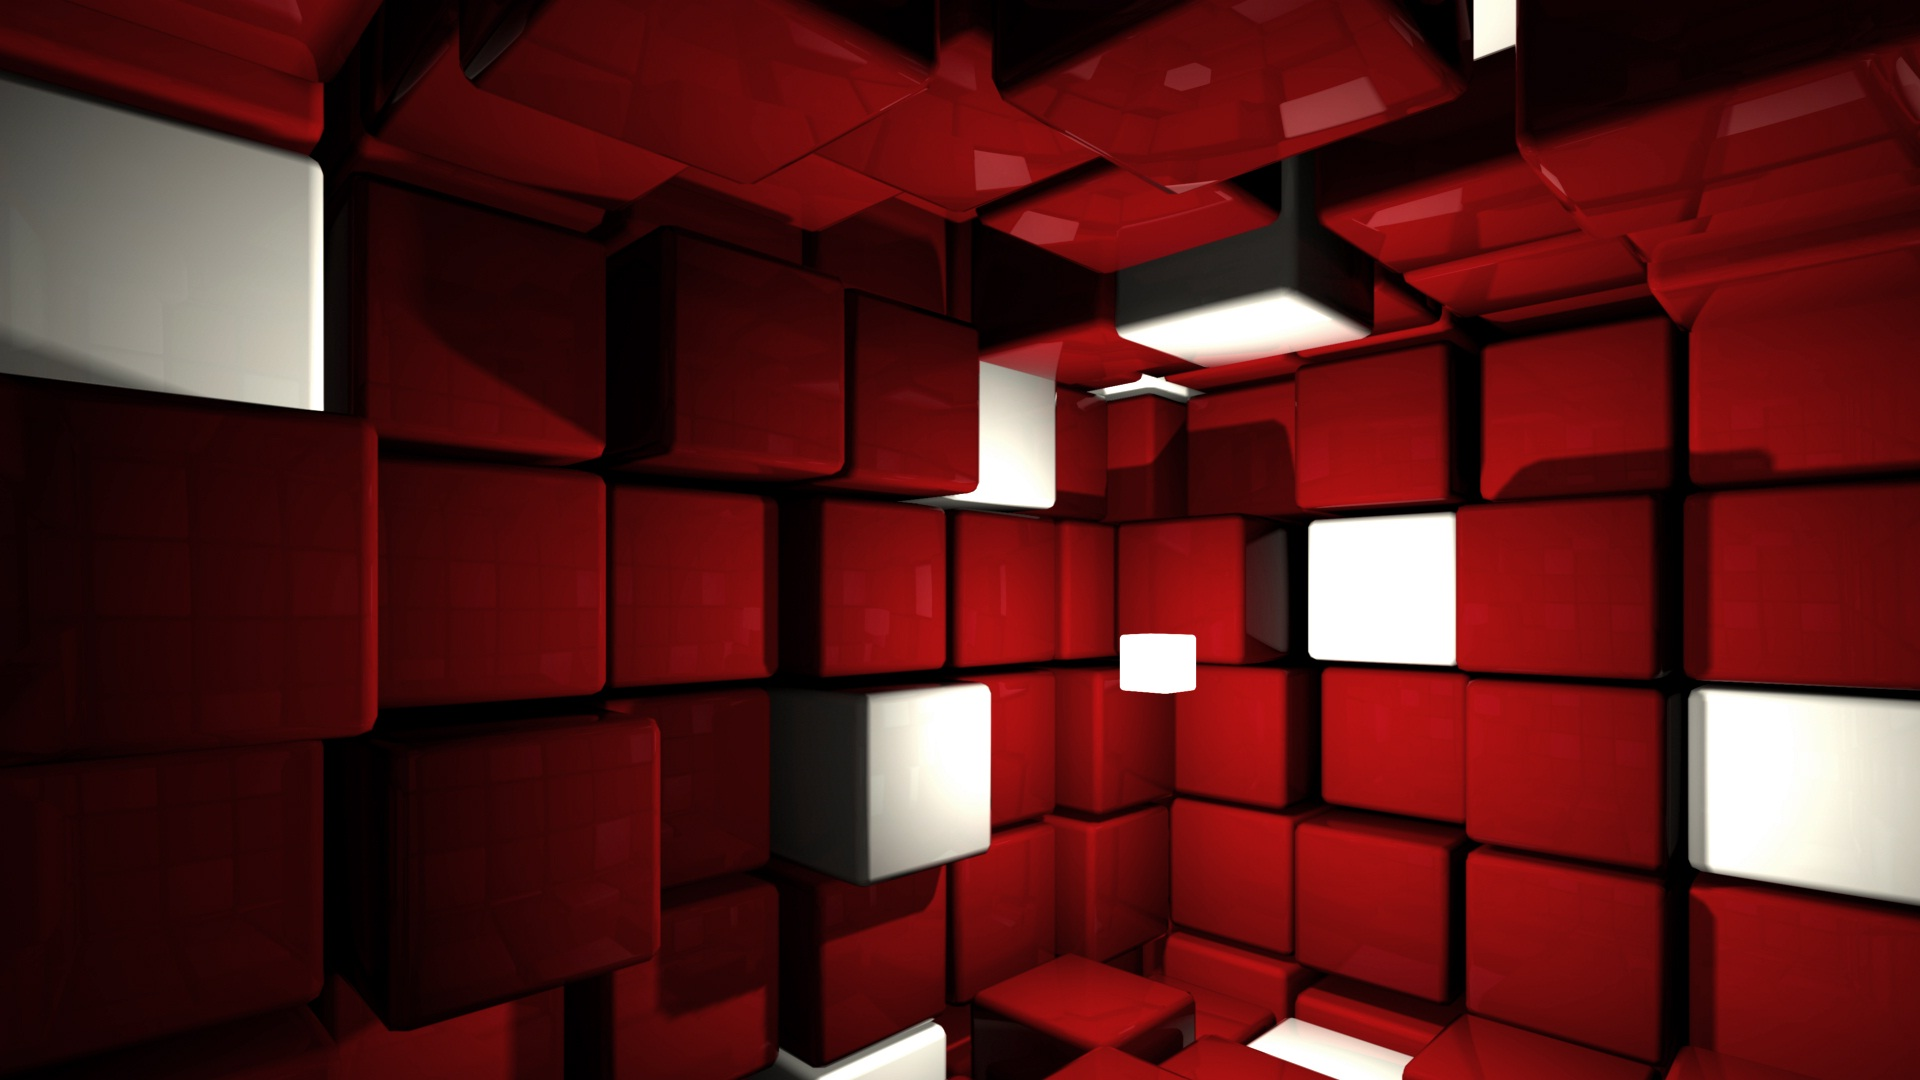 3d-red-and-white-tiles-1920%C3%971080-wallpaper-wp3601284